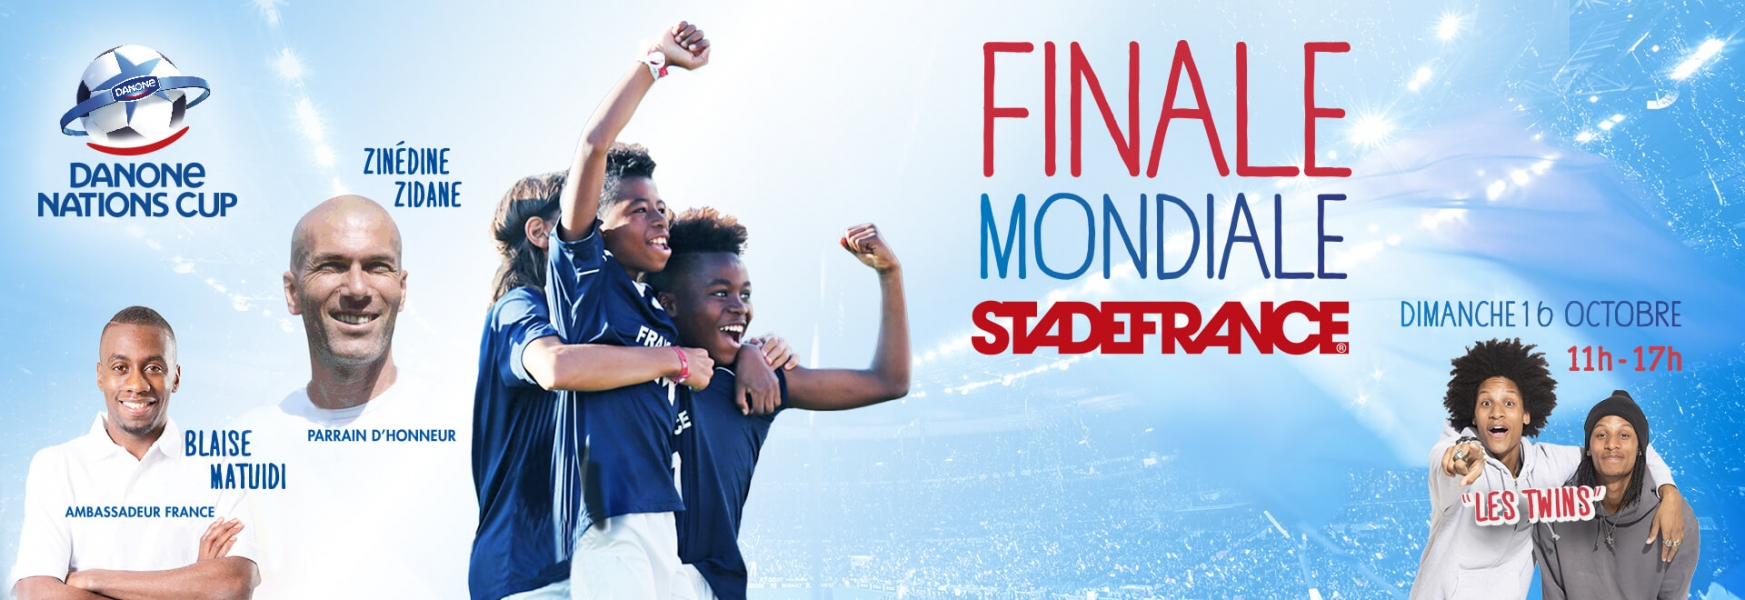 Danone Nations Cup le dimanche 16 octobre 2016 au Stade de France